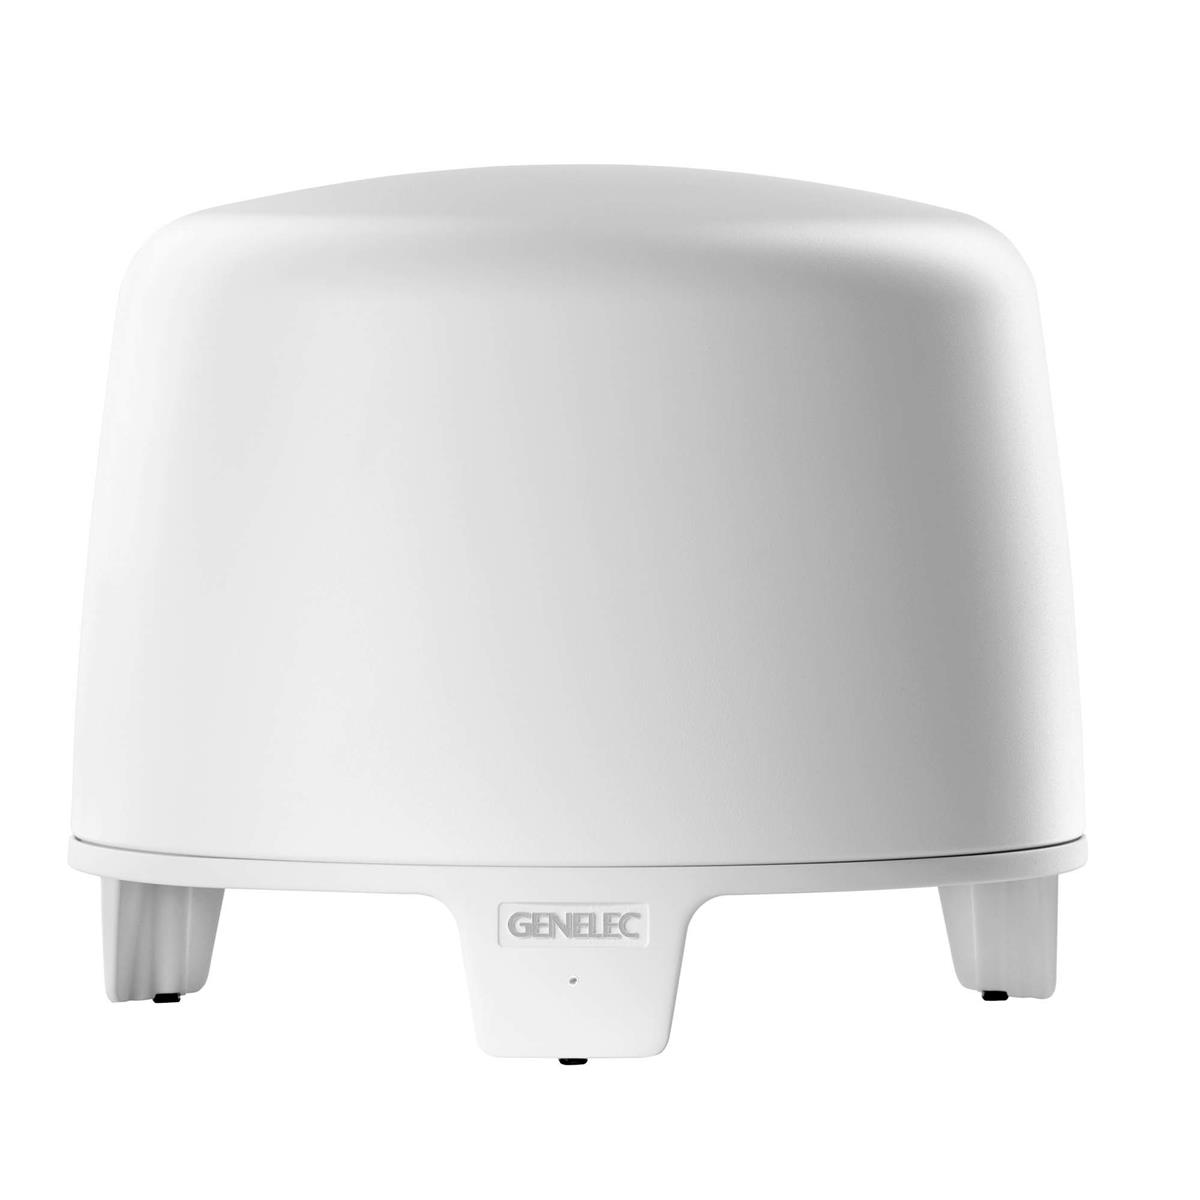 Genelec F Two mk2 Aktive Subwoofer 8in Hvit